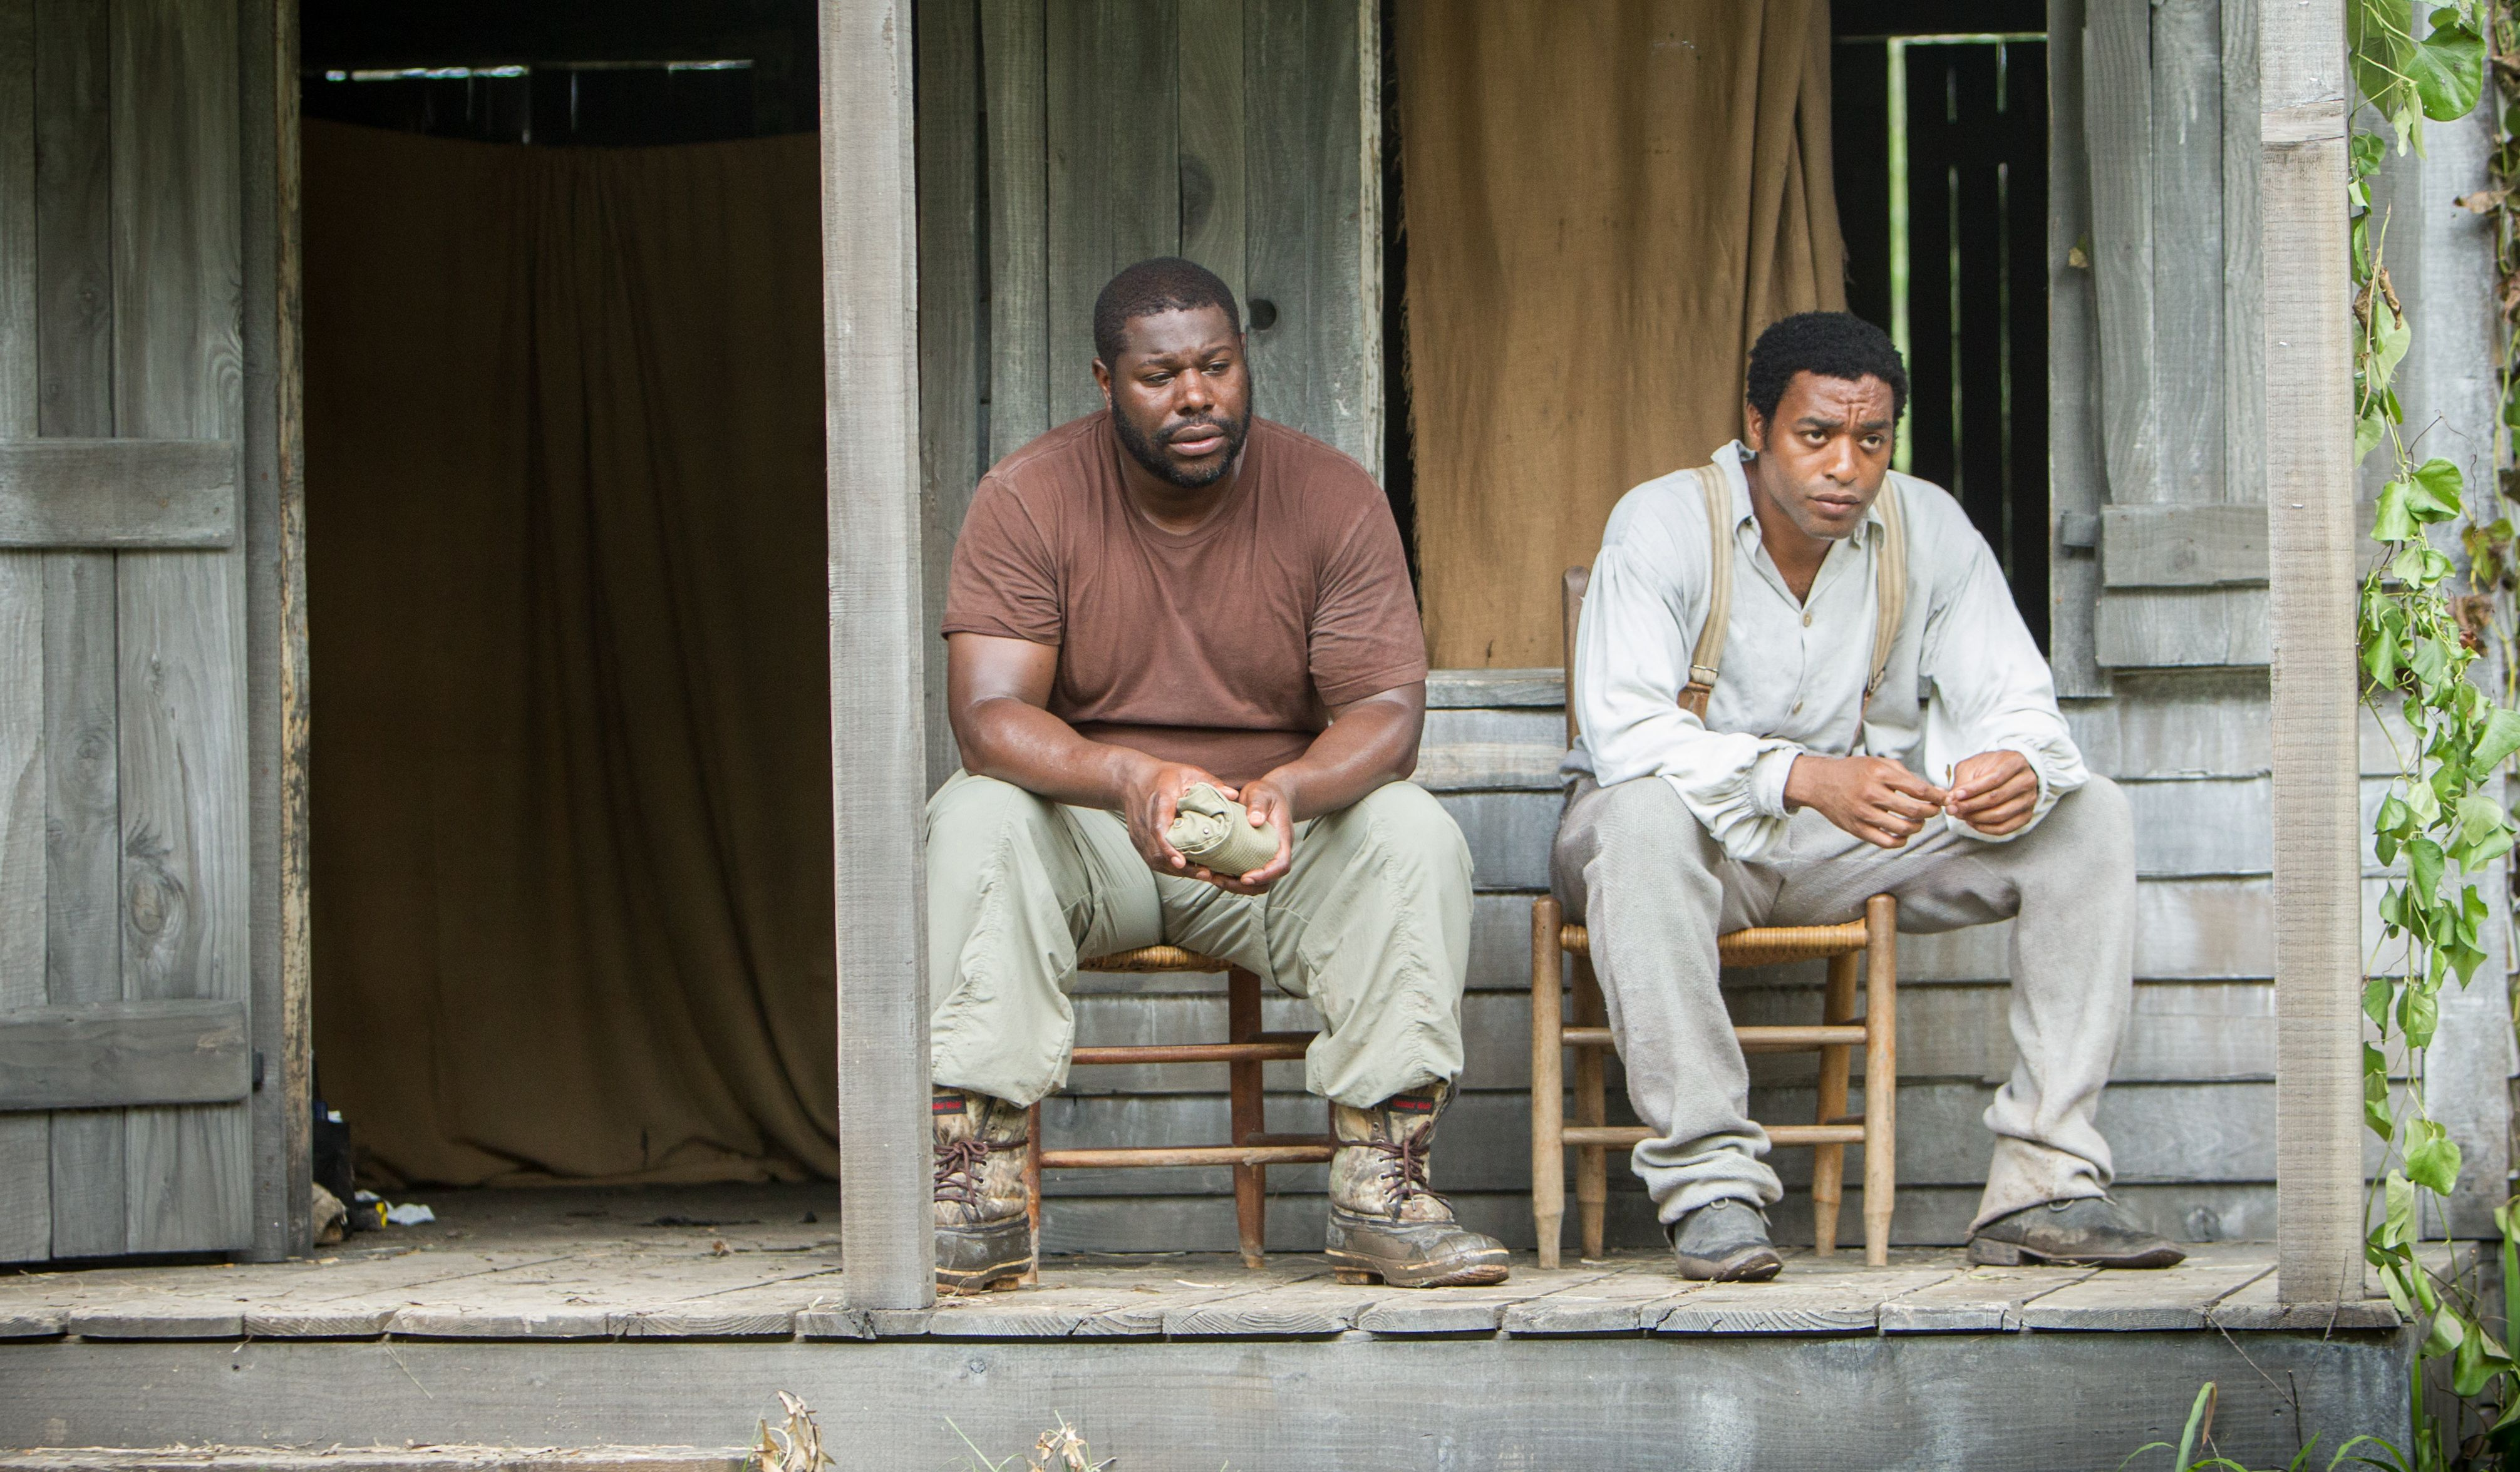 Director Steve McQueen and Chiwetel Ejiofor on the set of 12